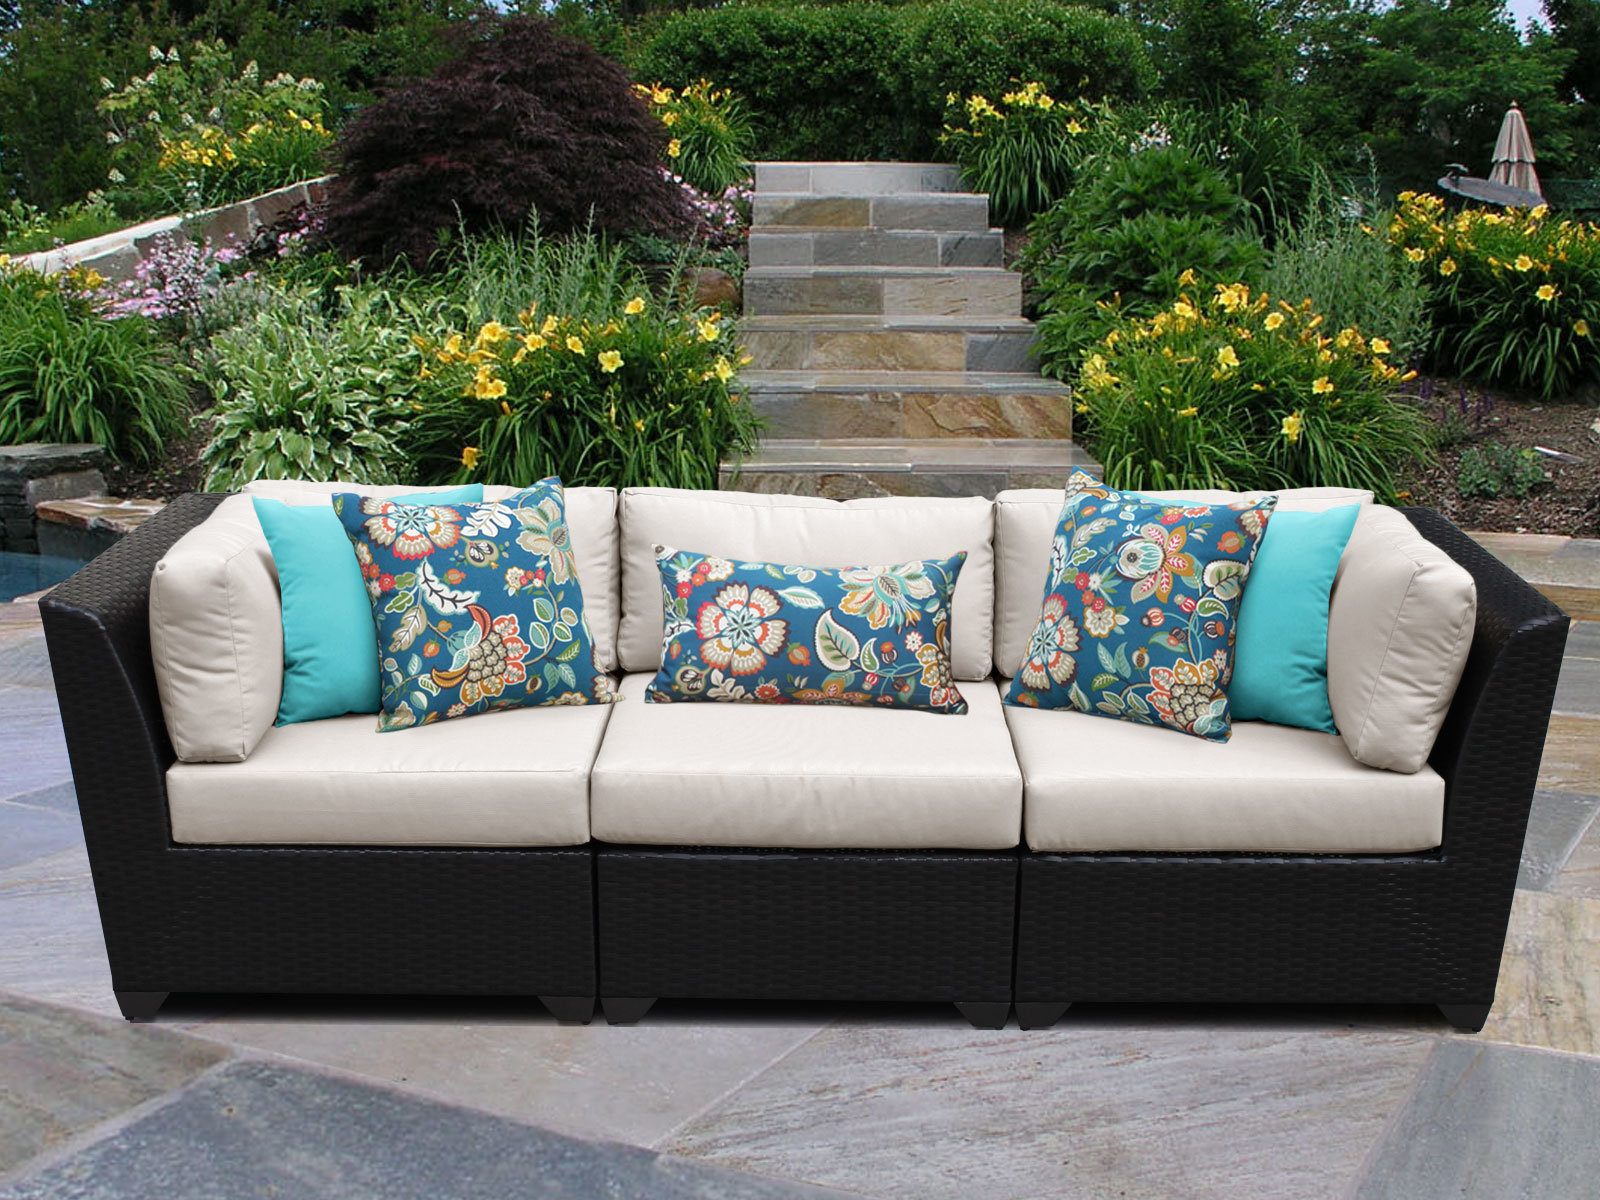 Newest Camak Patio Loveseats With Cushions With Regard To Camak Patio Sofa With Cushions (View 3 of 20)